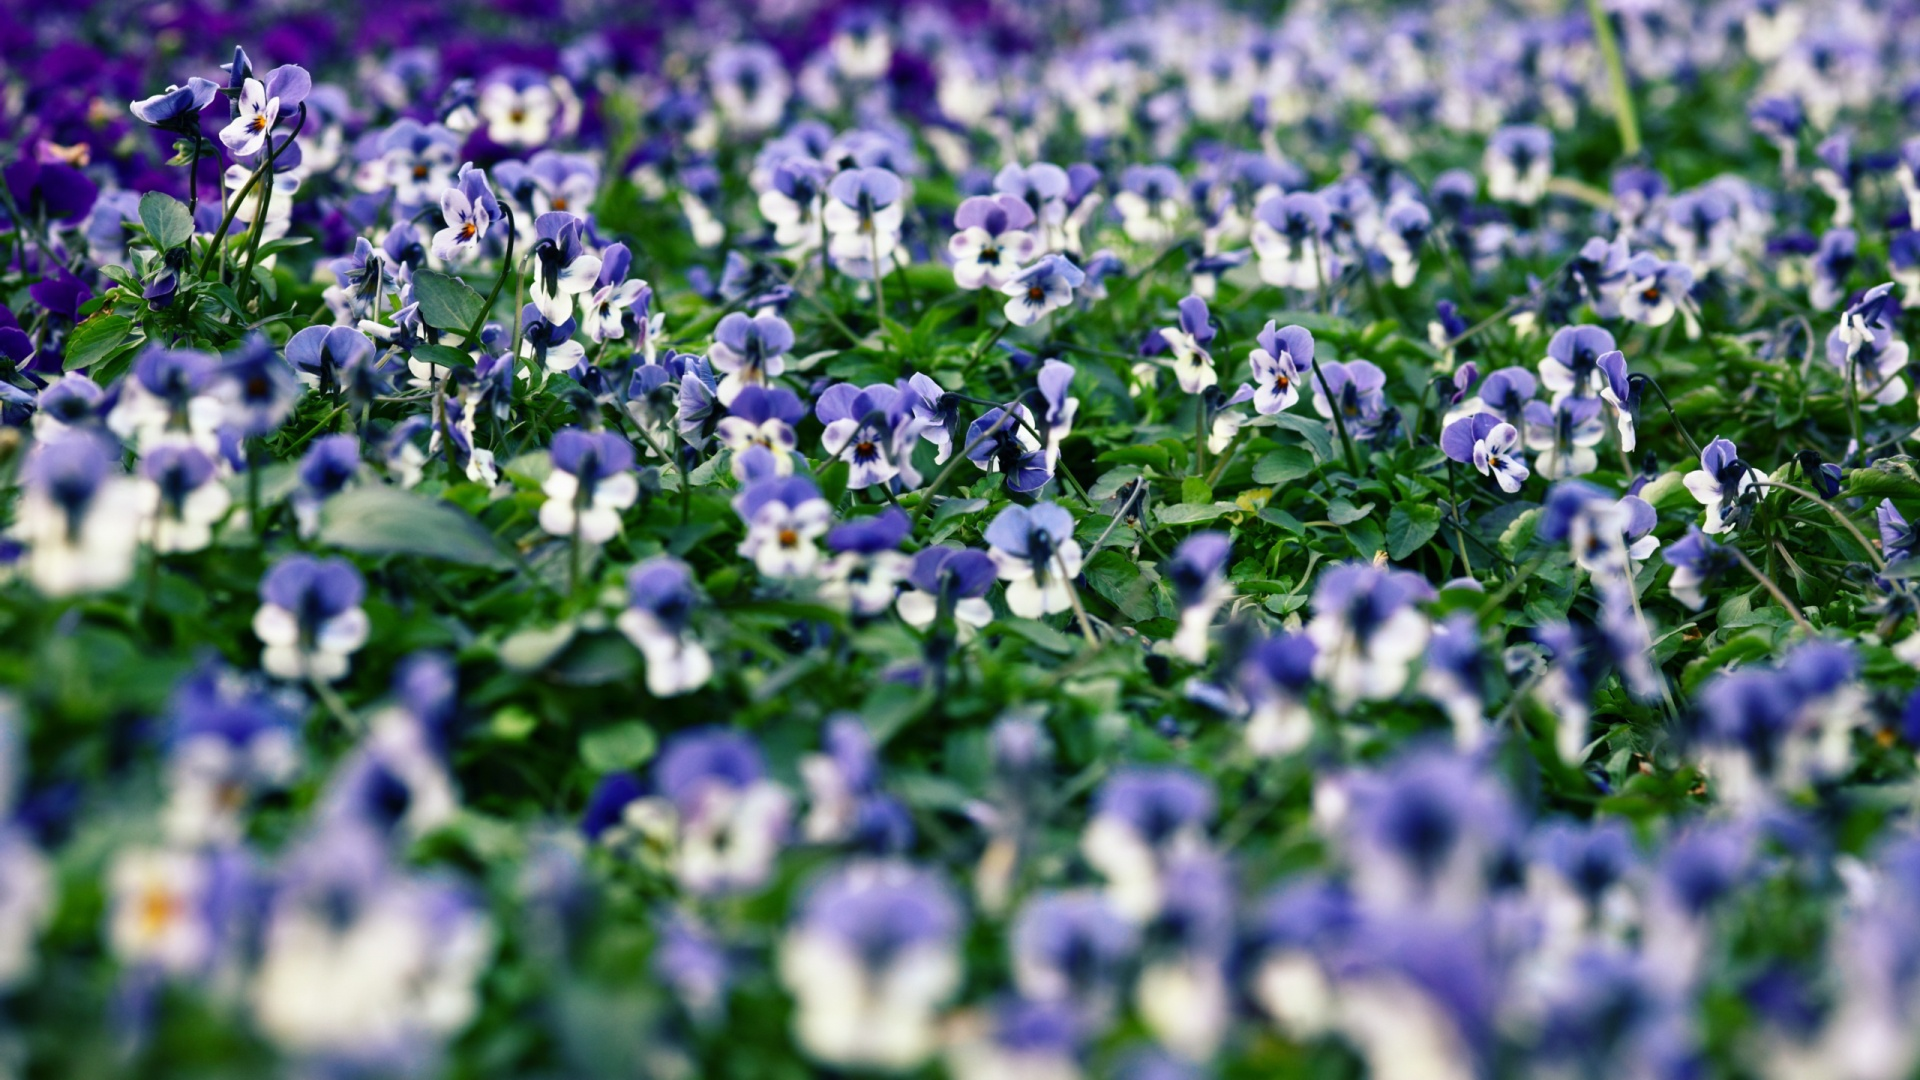 Pansies field